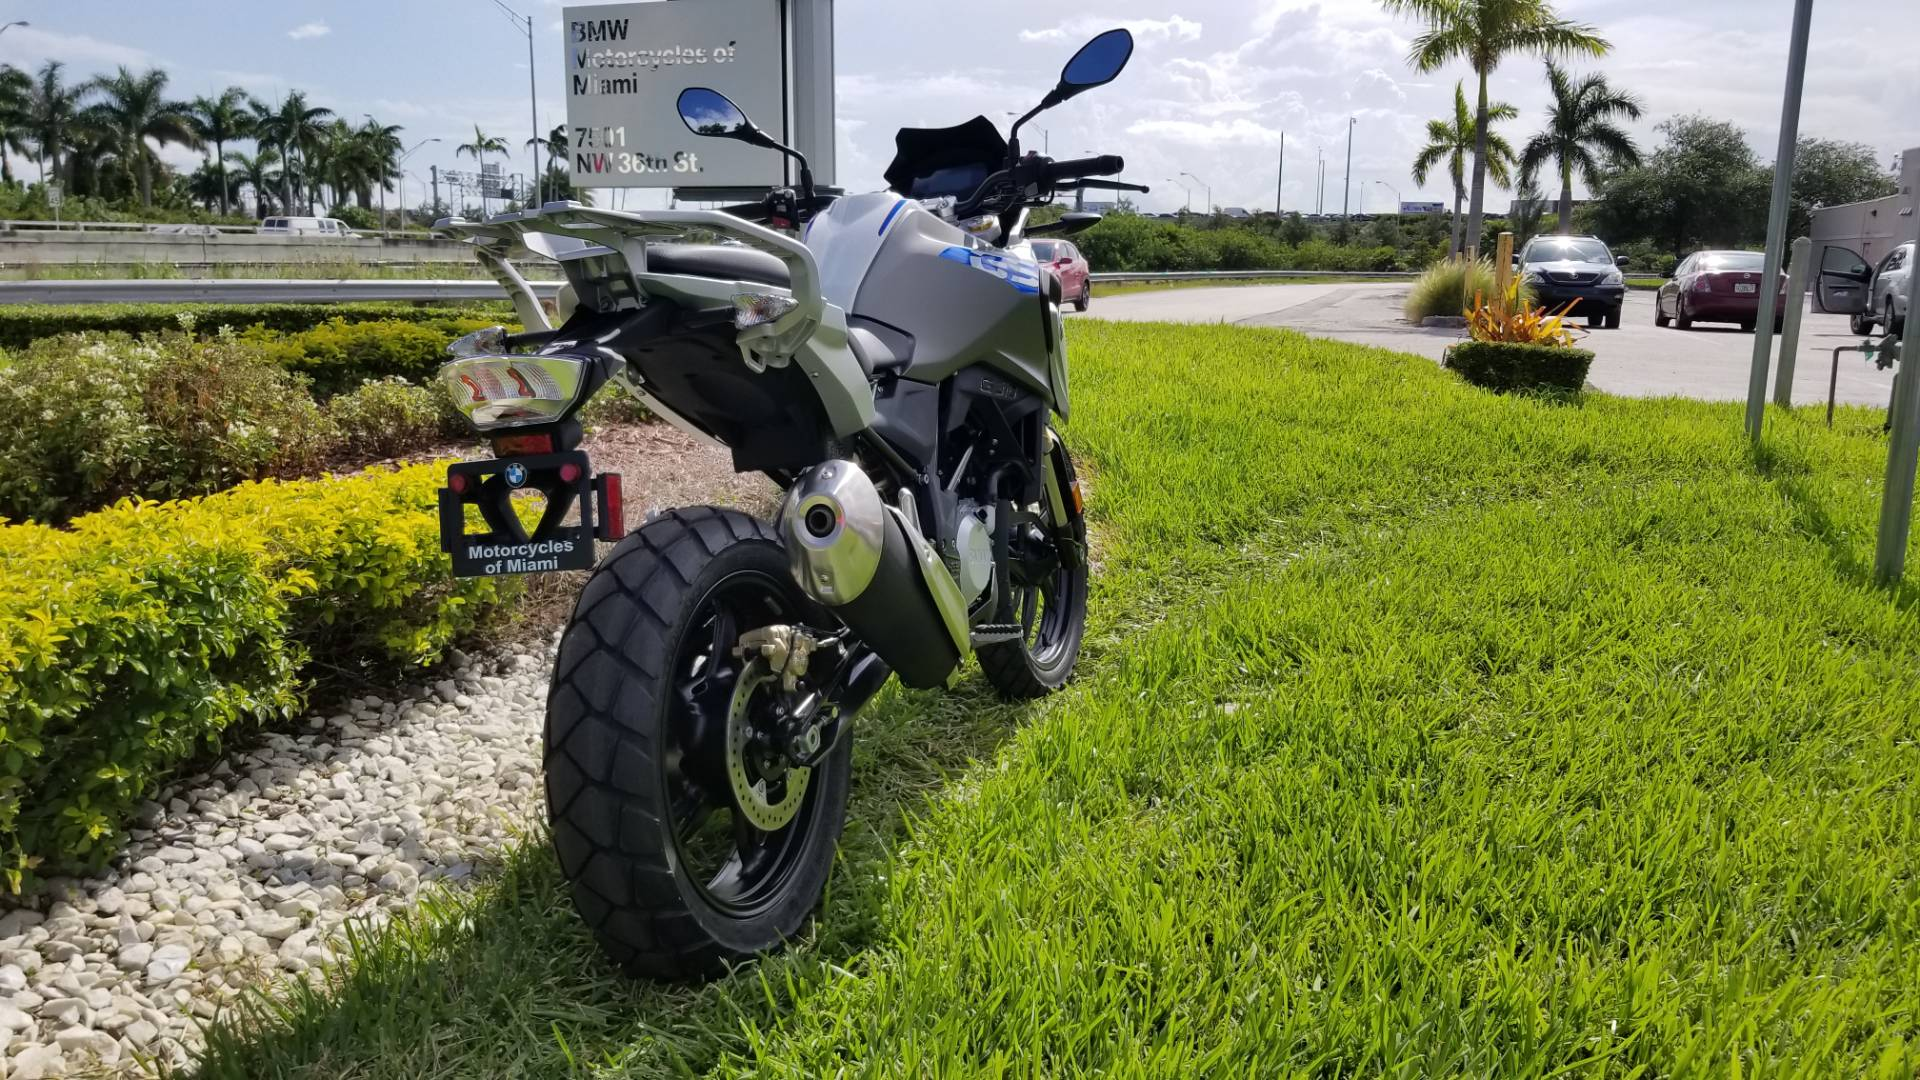 New 2019 BMW G 310 GS for sale, BMW G 310GS for sale, BMW Motorcycle G310GS, new BMW 310, Dual, BMW. BMW Motorcycles of Miami, Motorcycles of Miami, Motorcycles Miami, New Motorcycles, Used Motorcycles, pre-owned. #BMWMotorcyclesOfMiami #MotorcyclesOfMiami - Photo 16